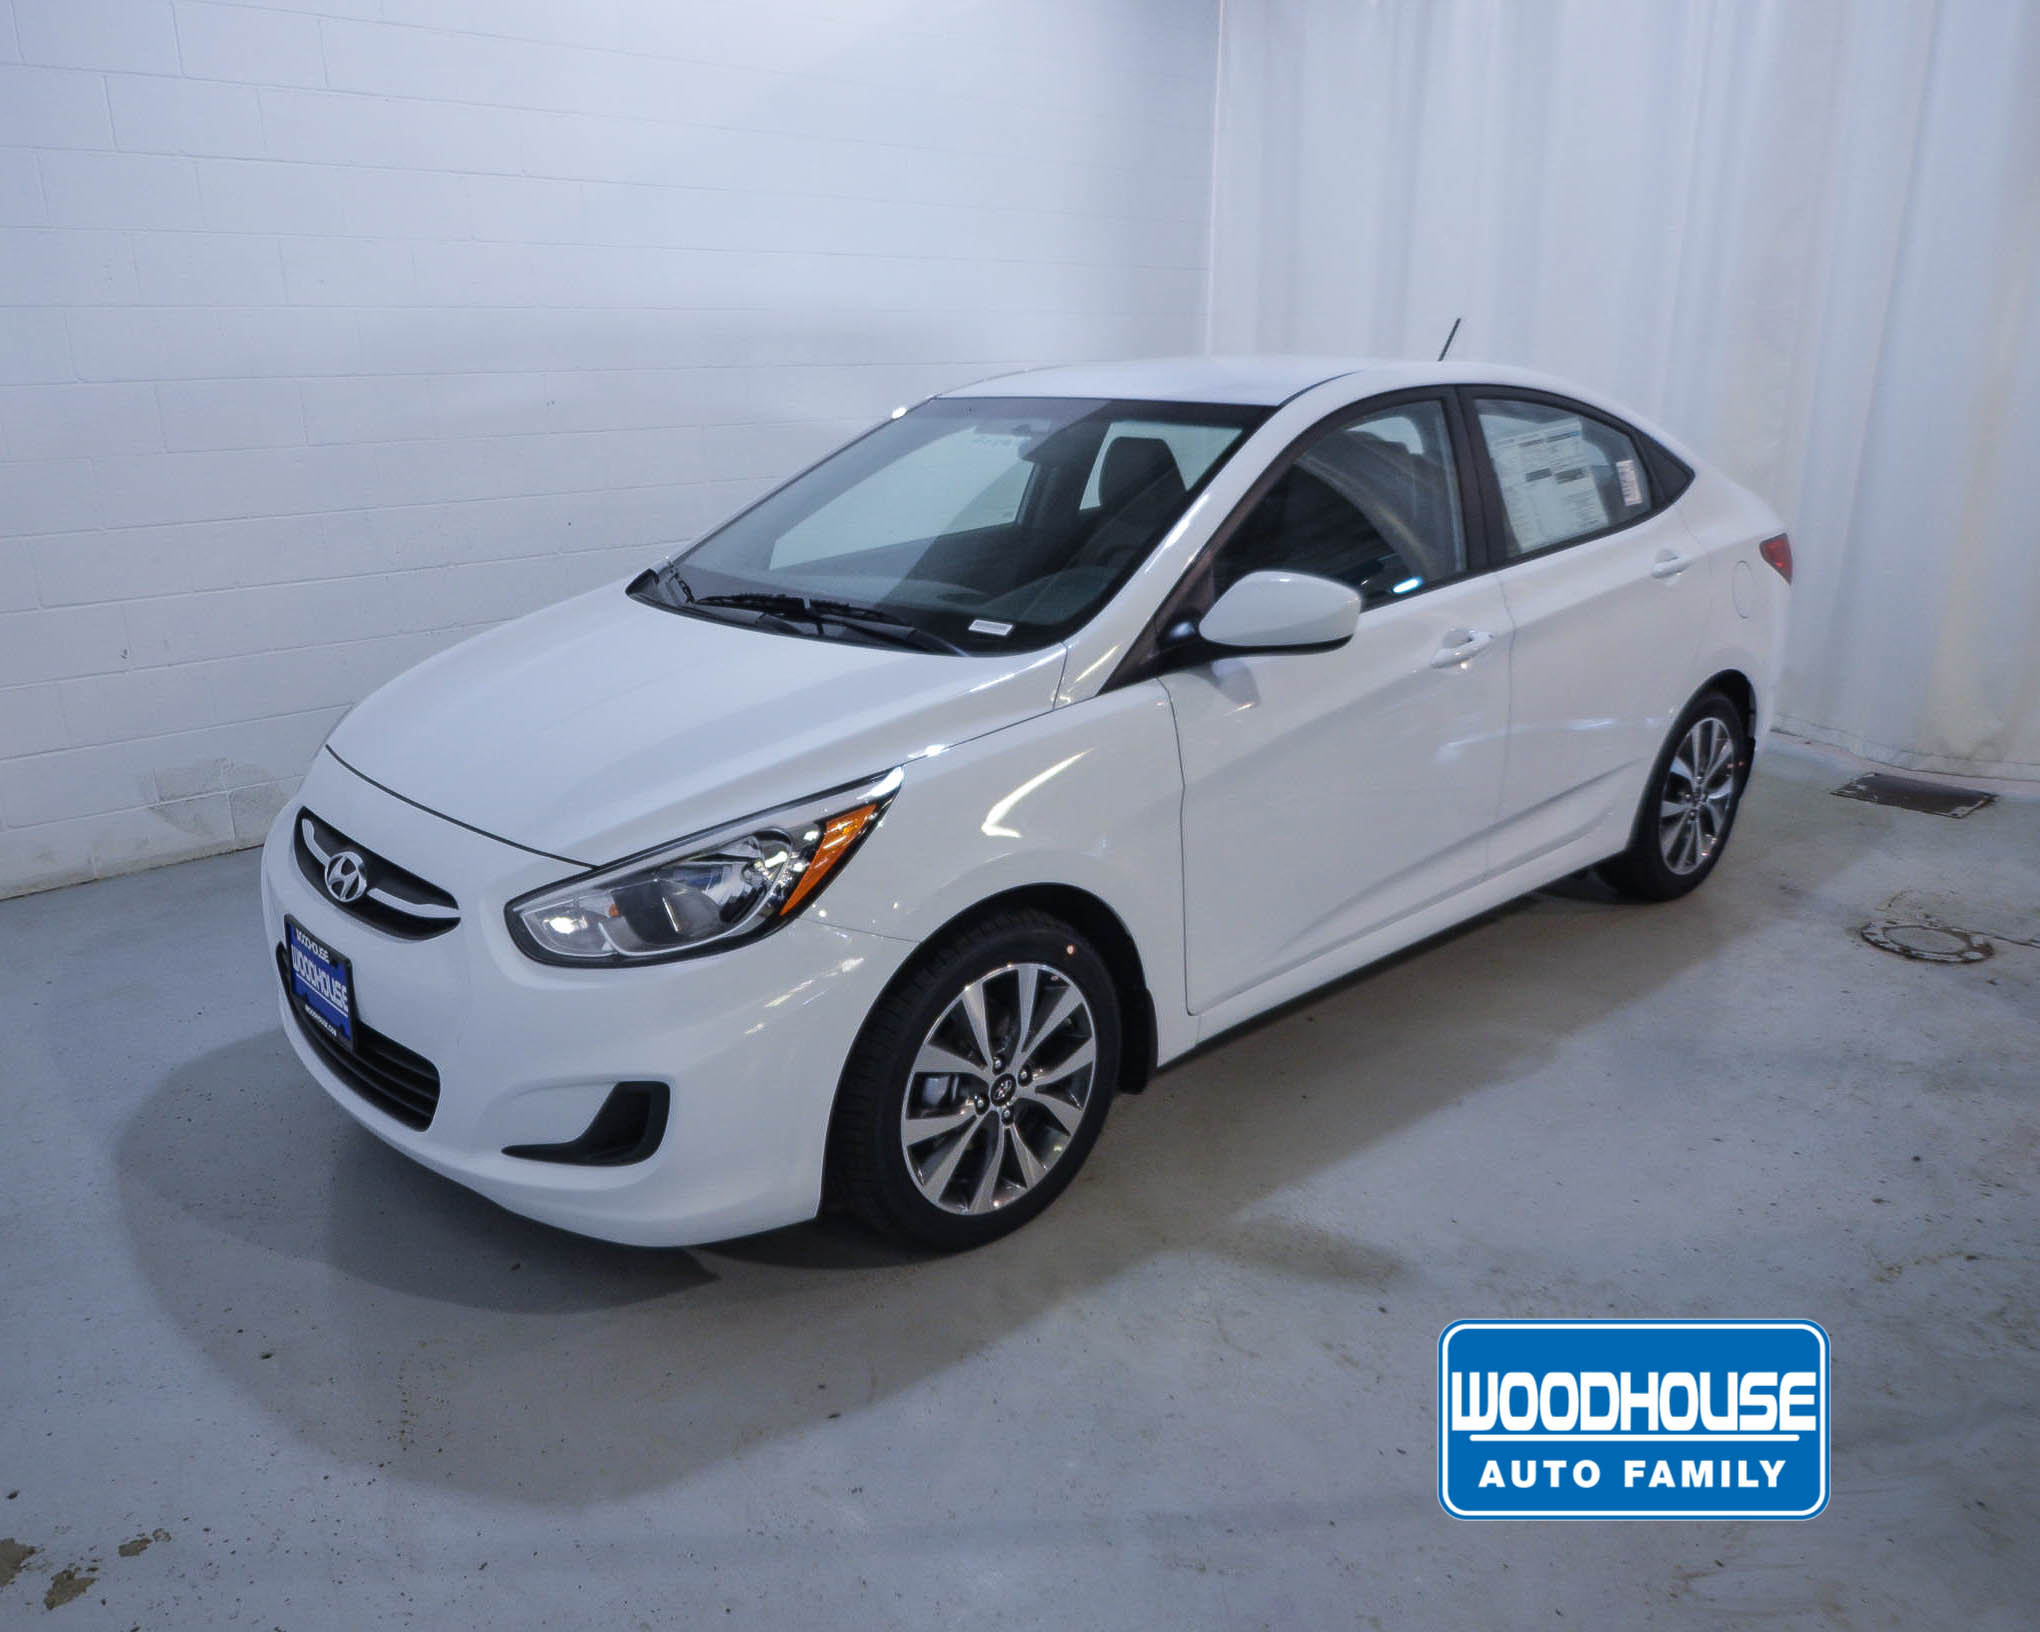 Hyundai Accent For Sale Woodhouse Auto